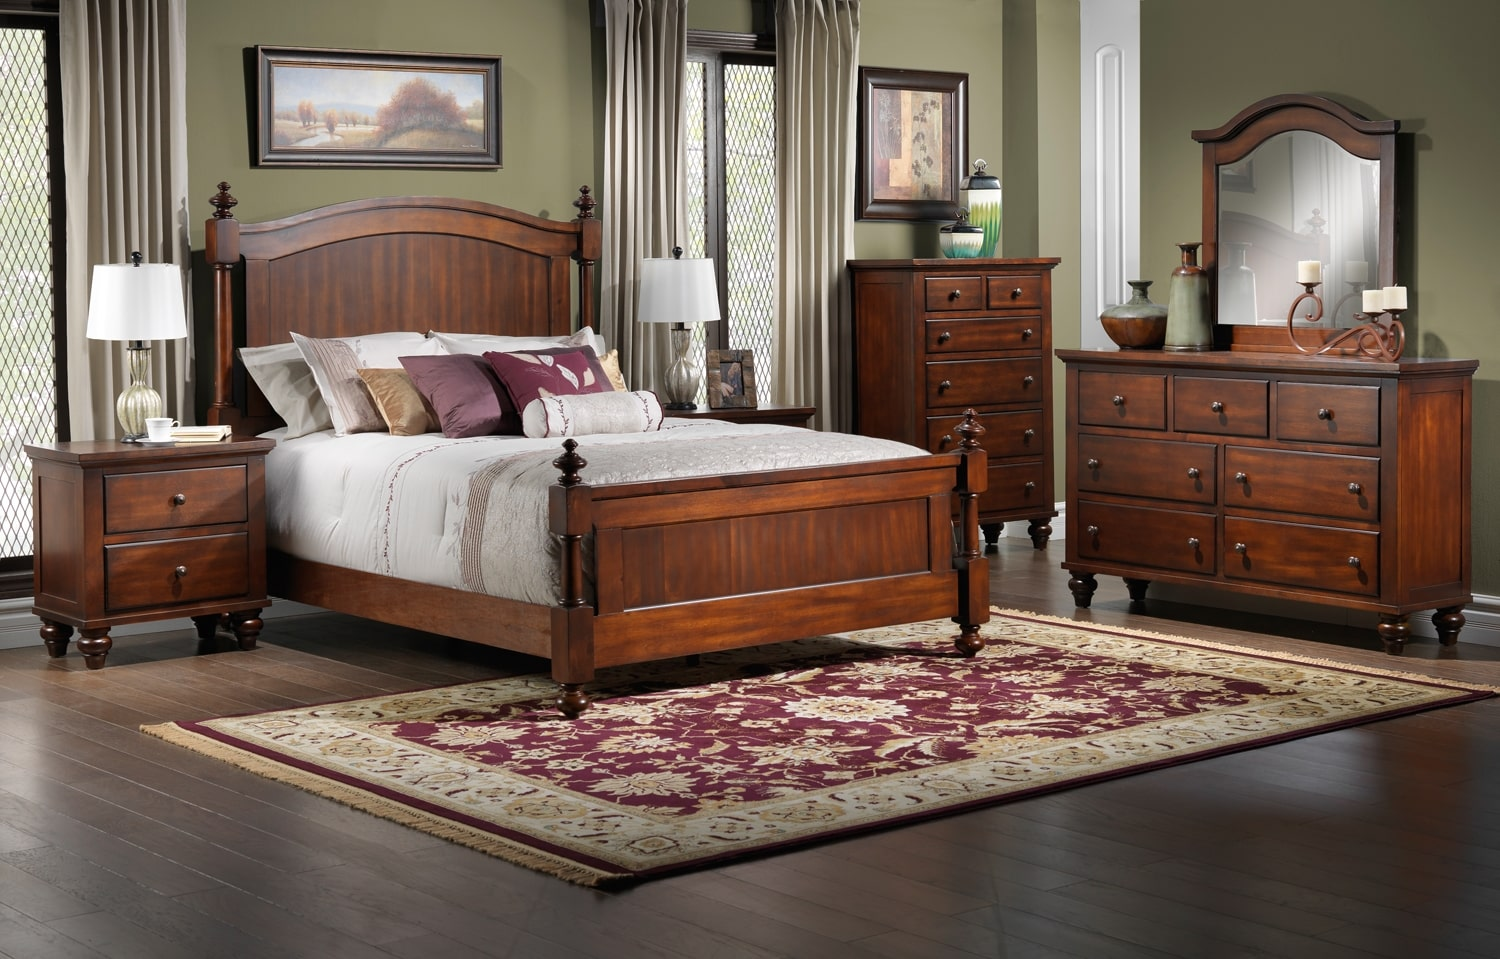 Taft Furniture Bedroom Sets Art Van Bedroom Furniture Popular Interior House Ideas